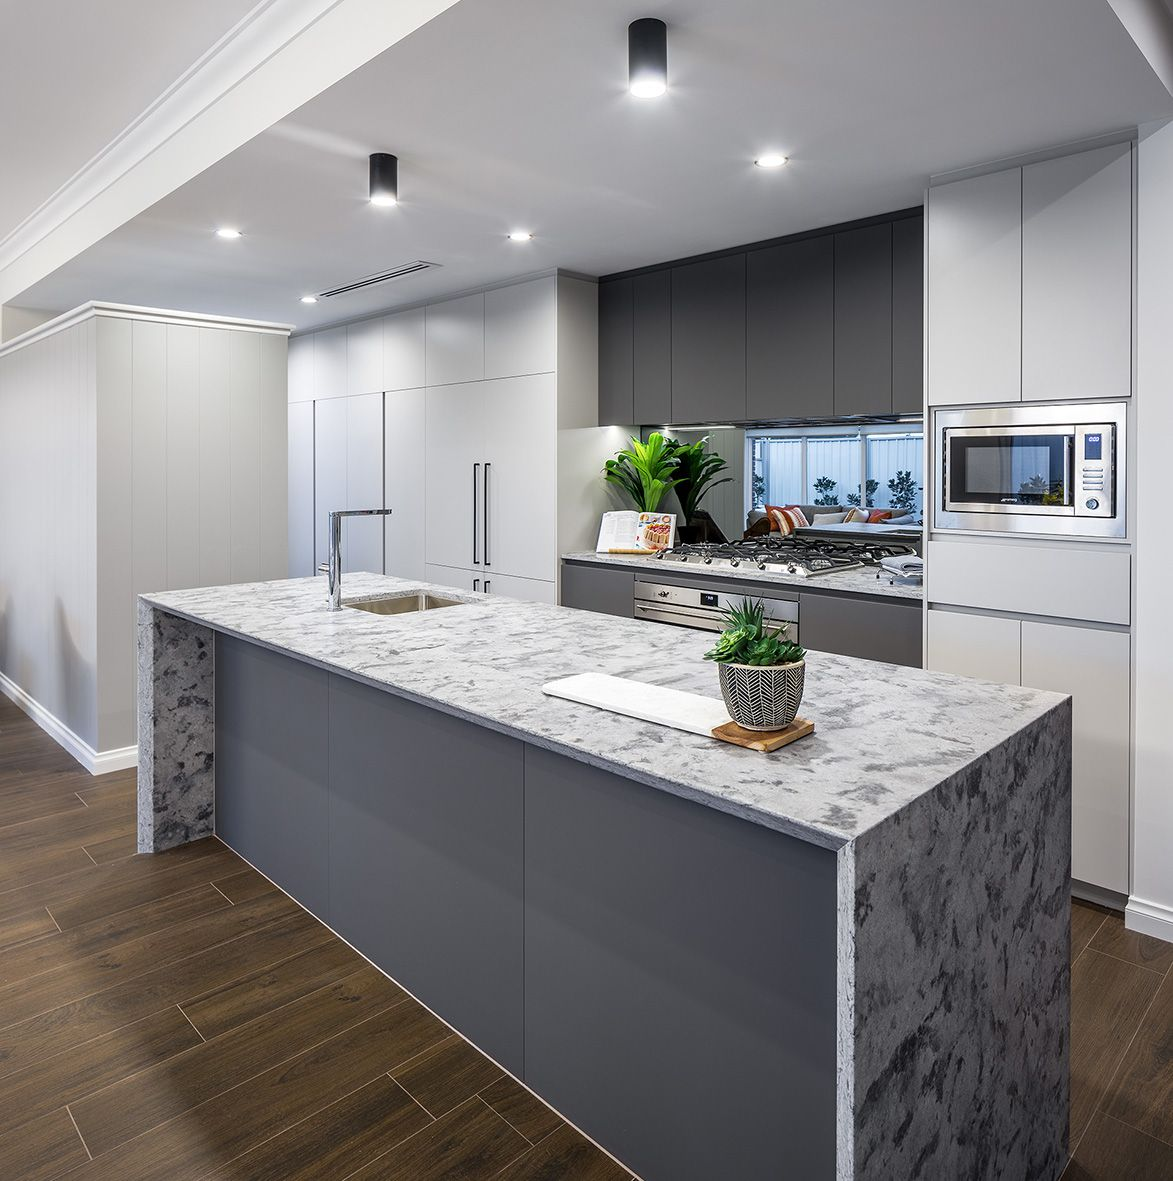 Light filled kitchen with convenient scullery and pantry